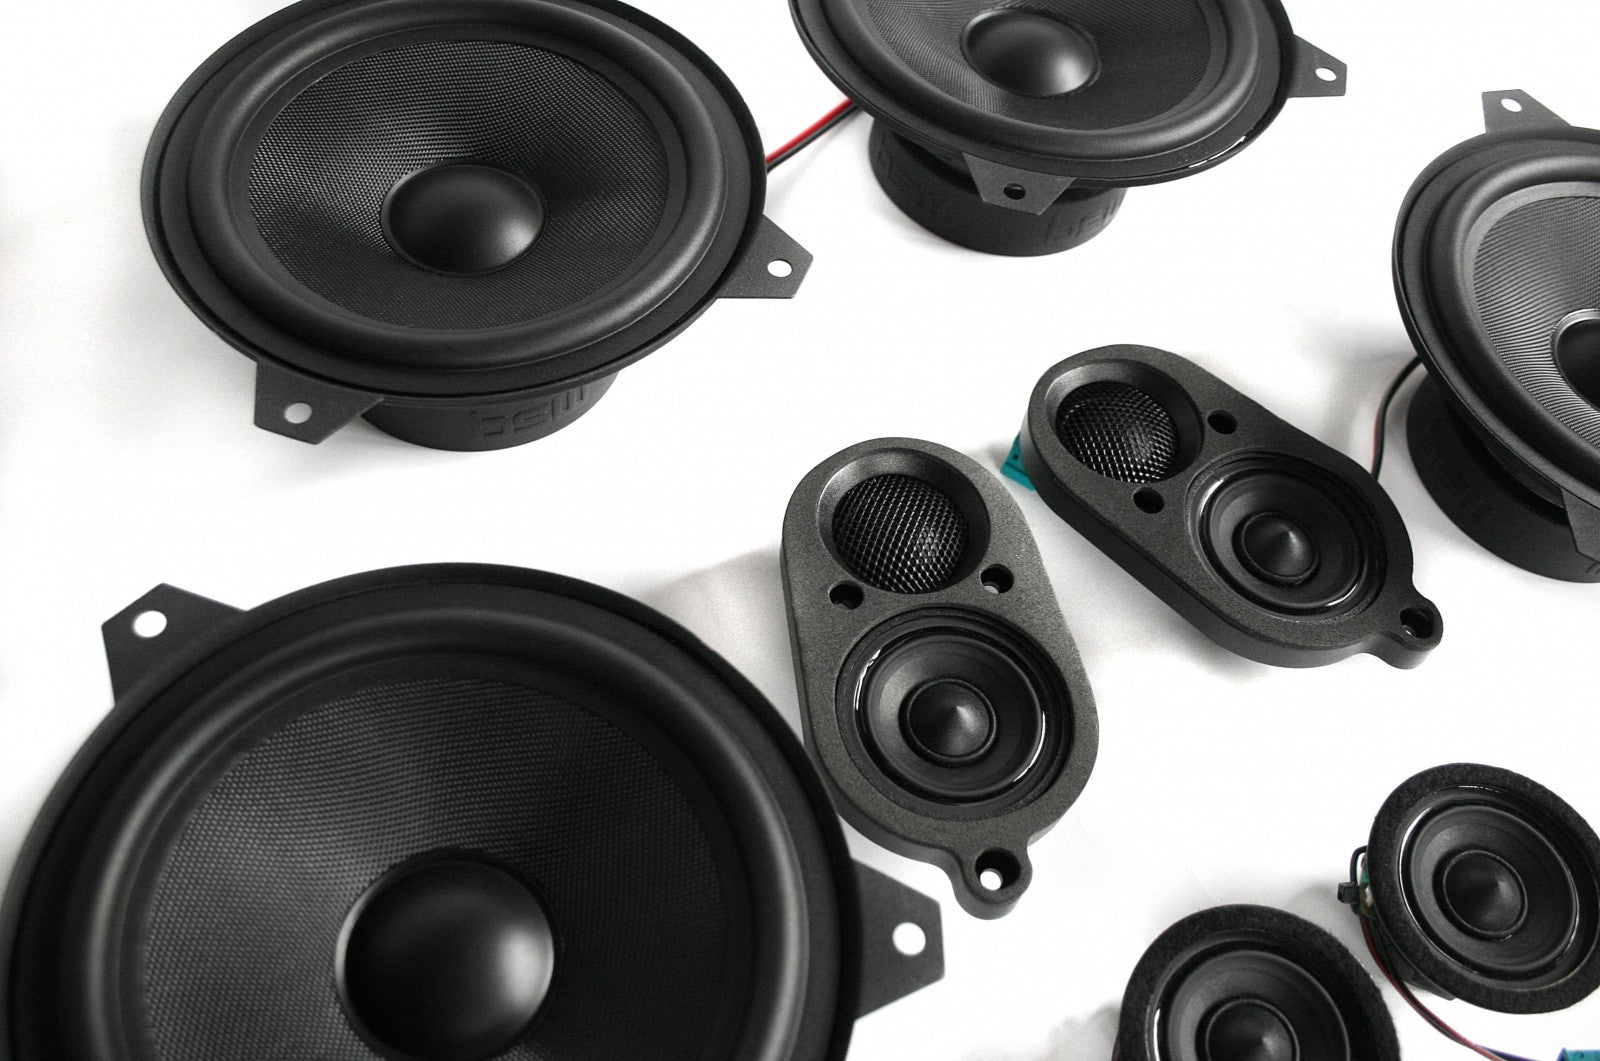 BMW Speaker Upgrade for E46 Coupe with Standard Hi-Fi